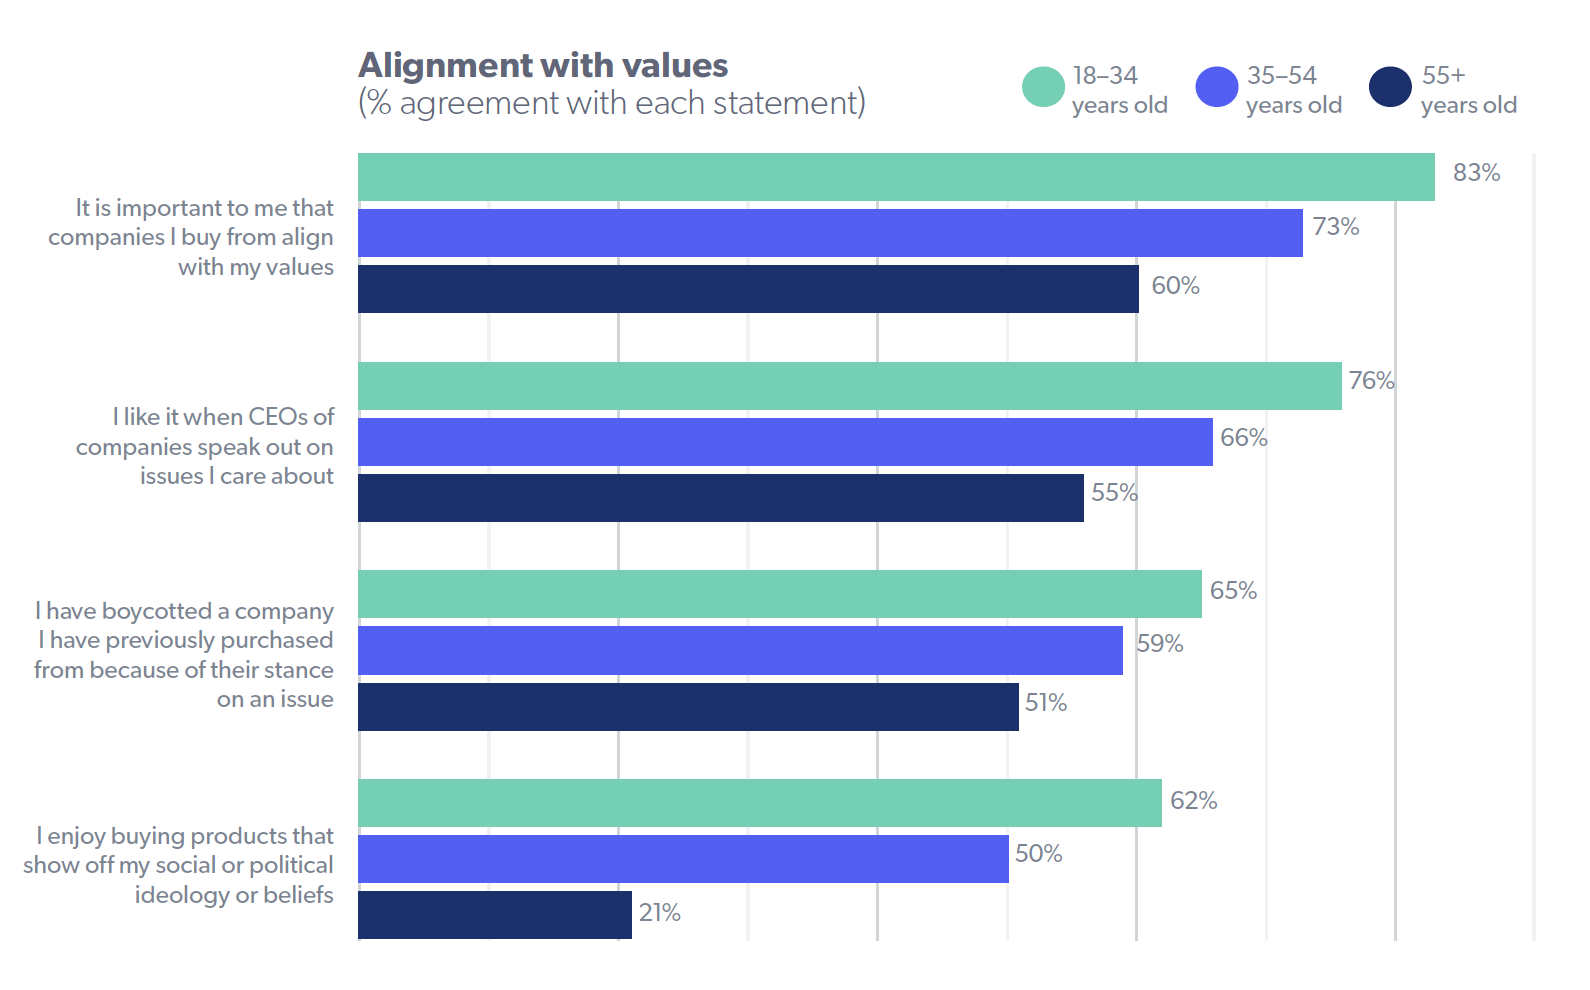 Alignment with values (% agreement with each statement)